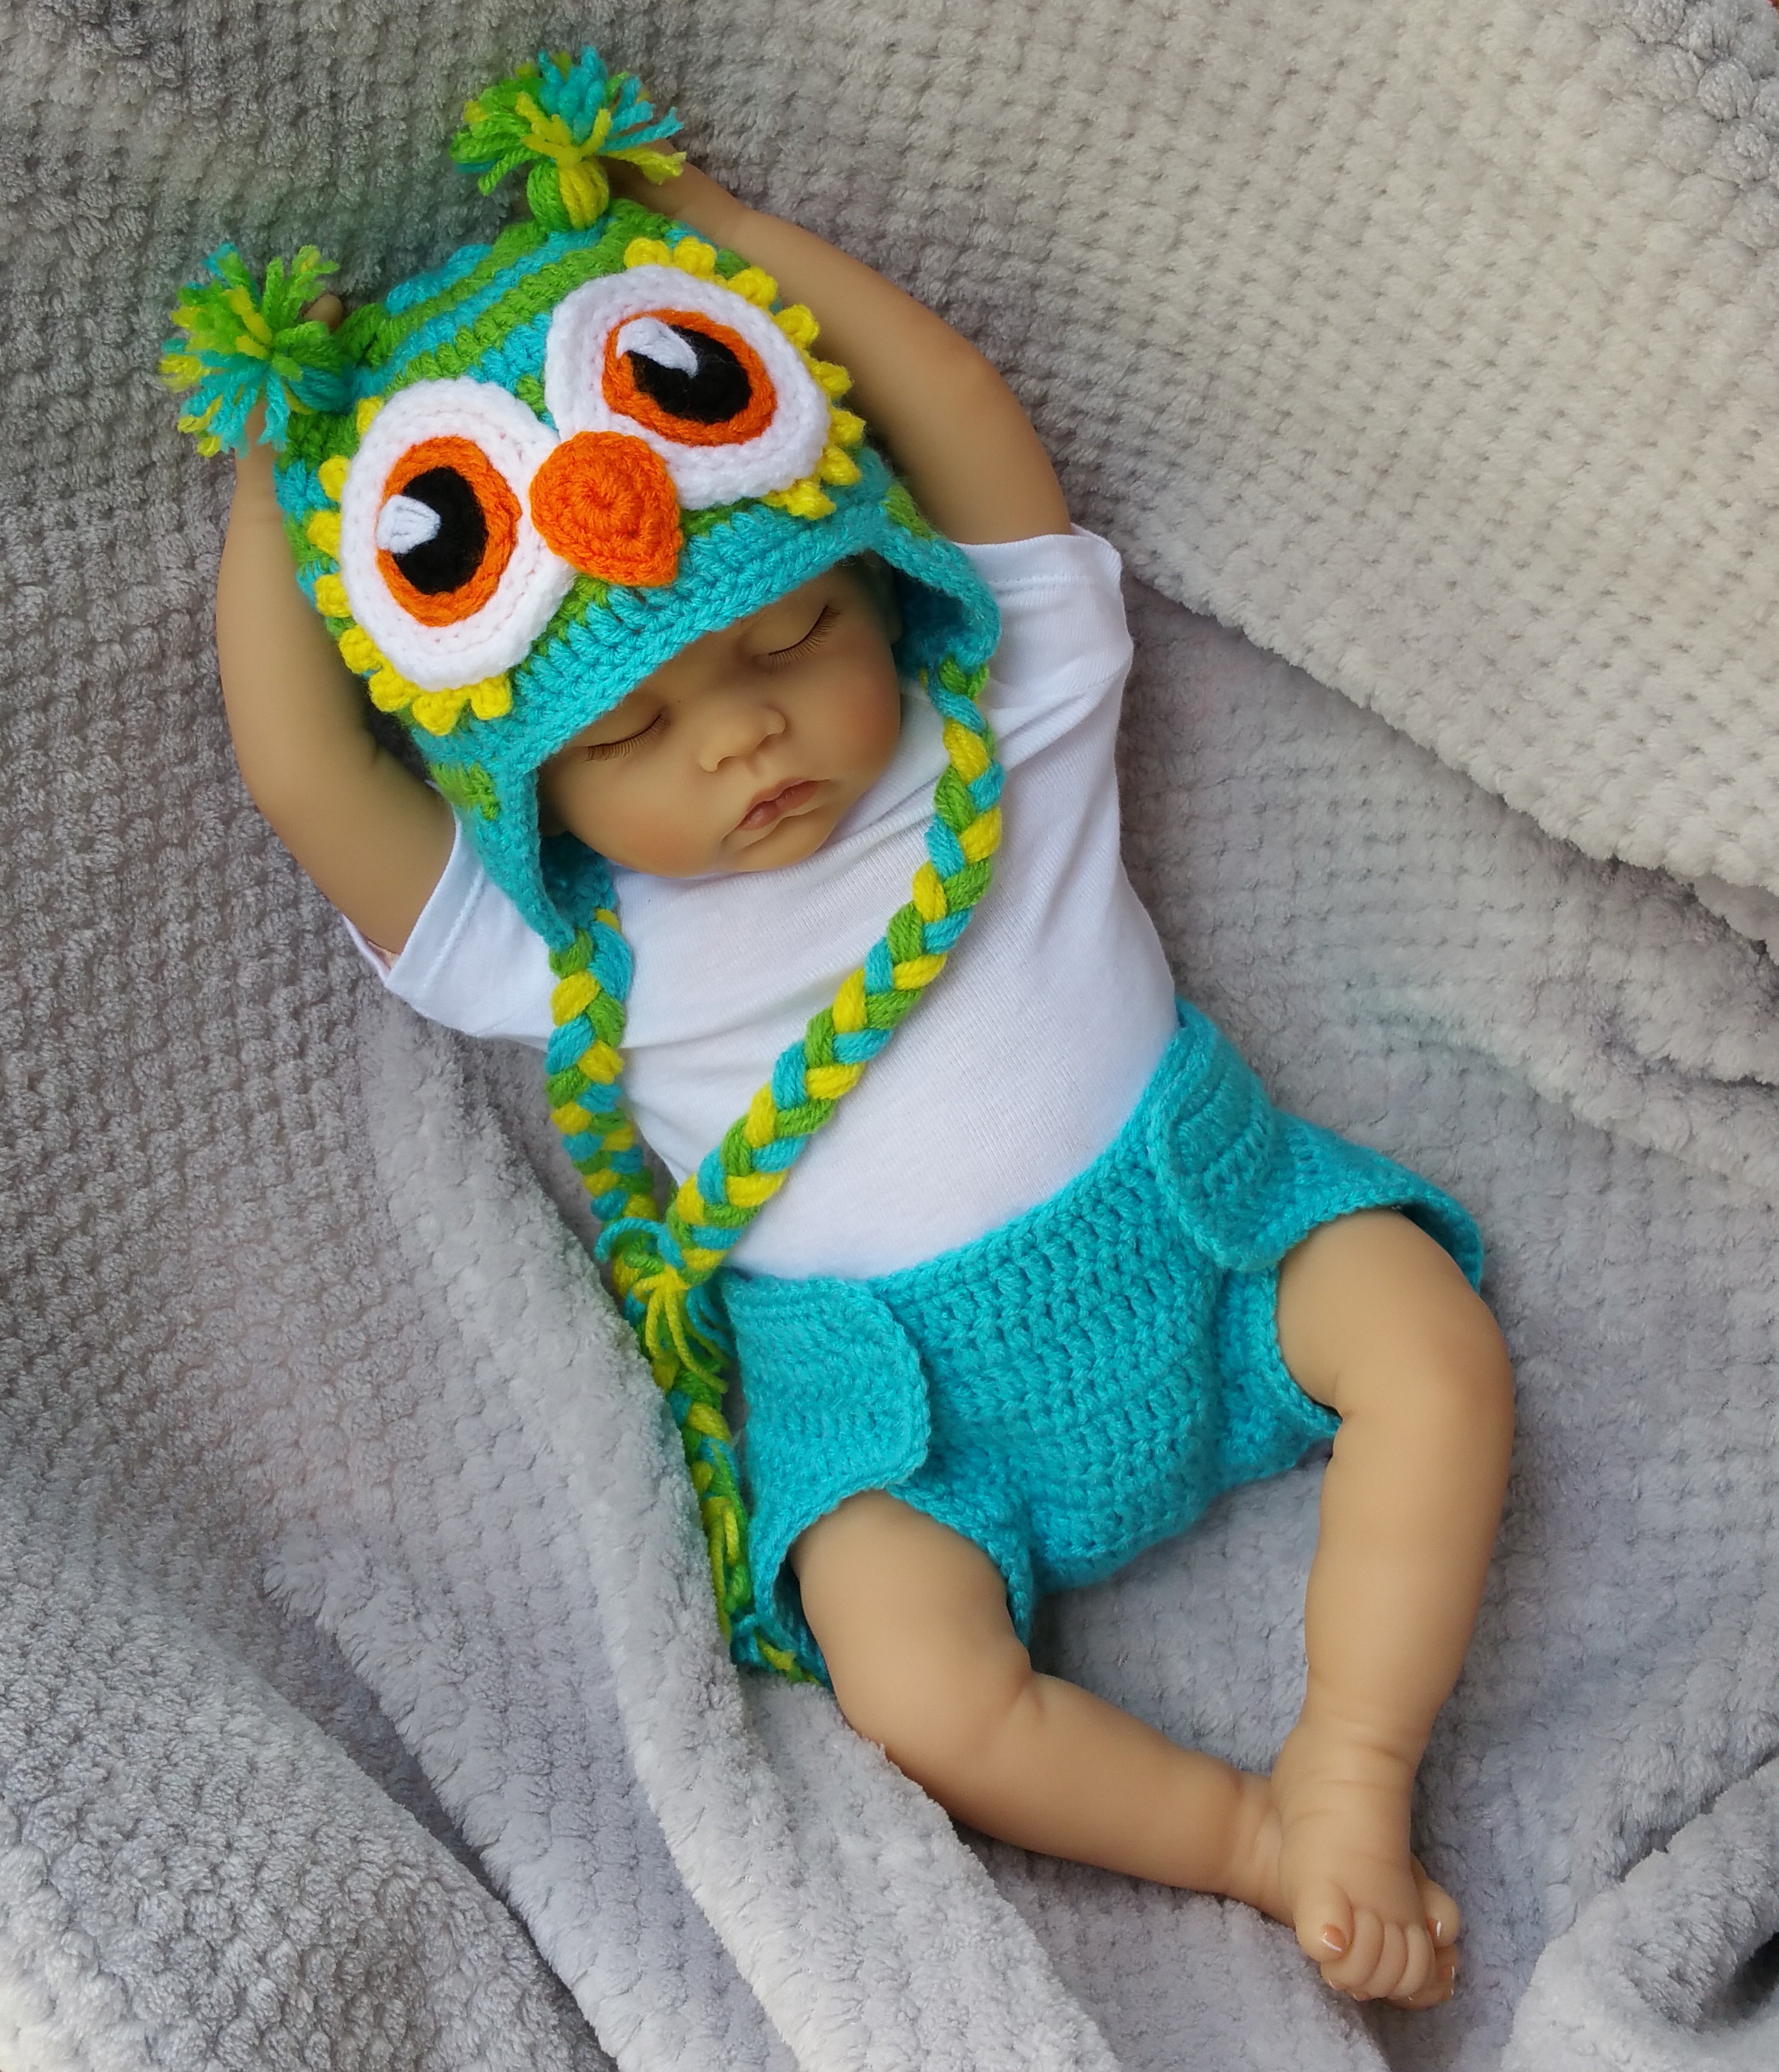 Crochet Baby Diaper Cover and Hat Fresh Crochet New Baby Clothing Set Baby Owl Hat and Crochet Of Perfect 50 Photos Crochet Baby Diaper Cover and Hat